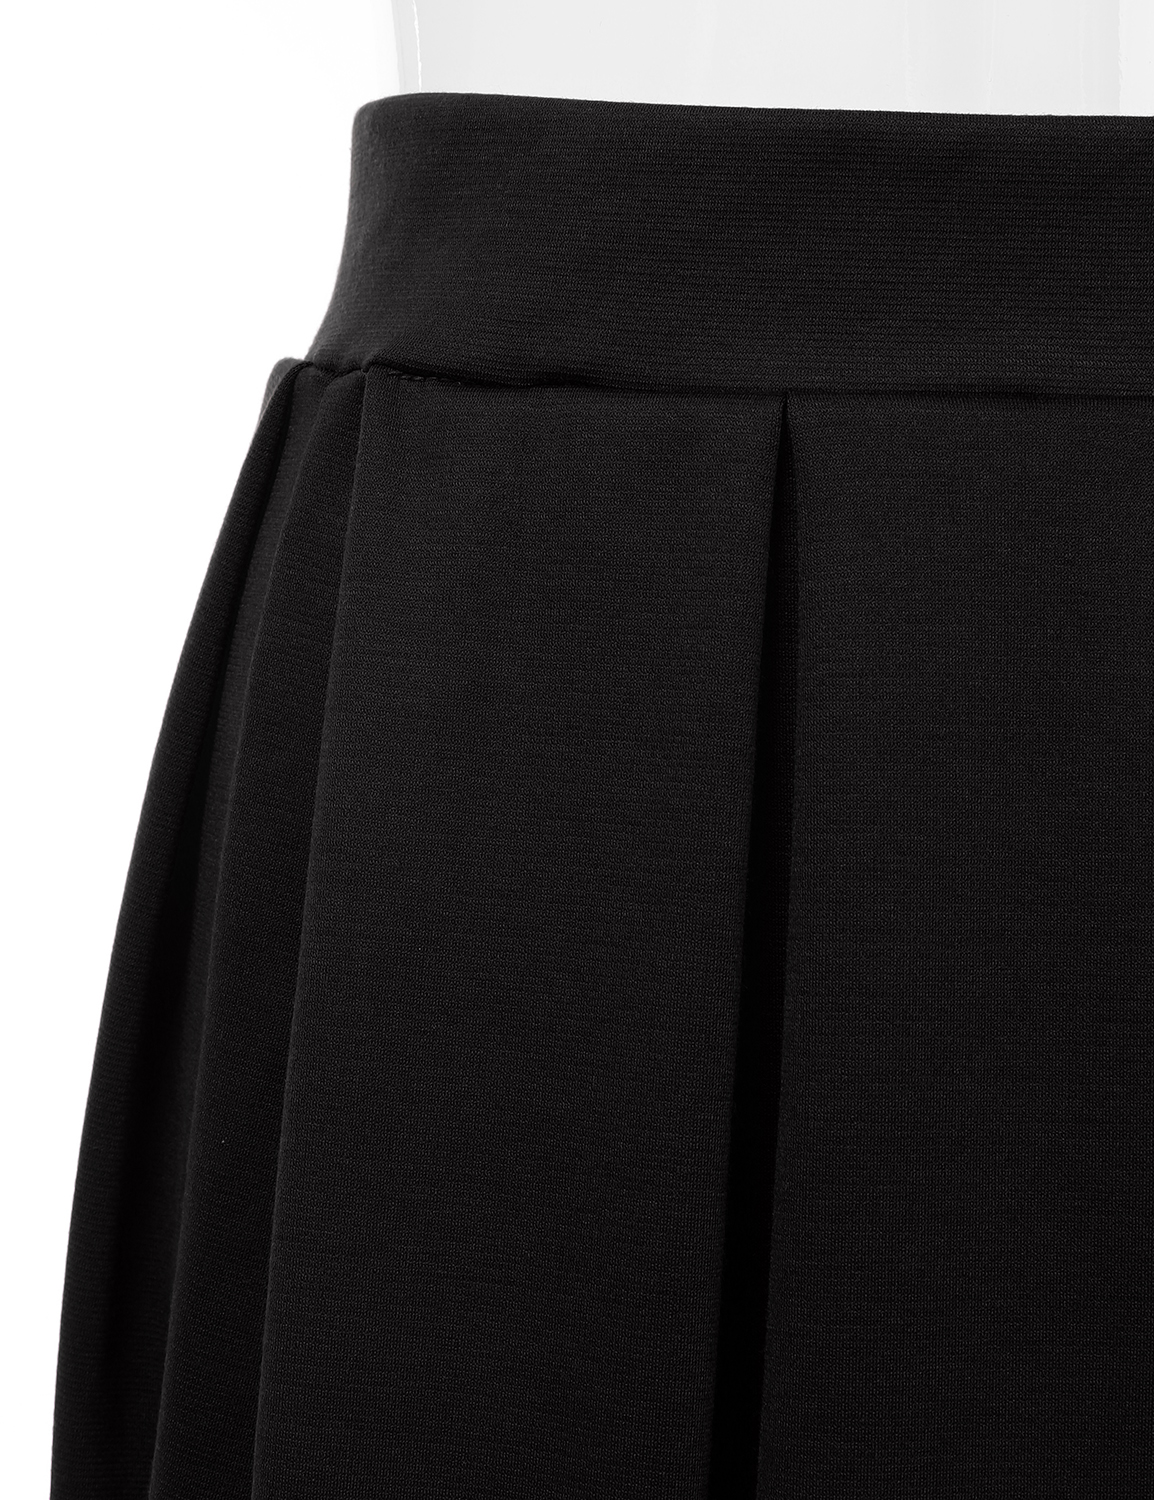 Doublju-Elastic-Waist-Flare-Pleated-Skater-Midi-Skirt-for-Women-with-Plus-Size thumbnail 28